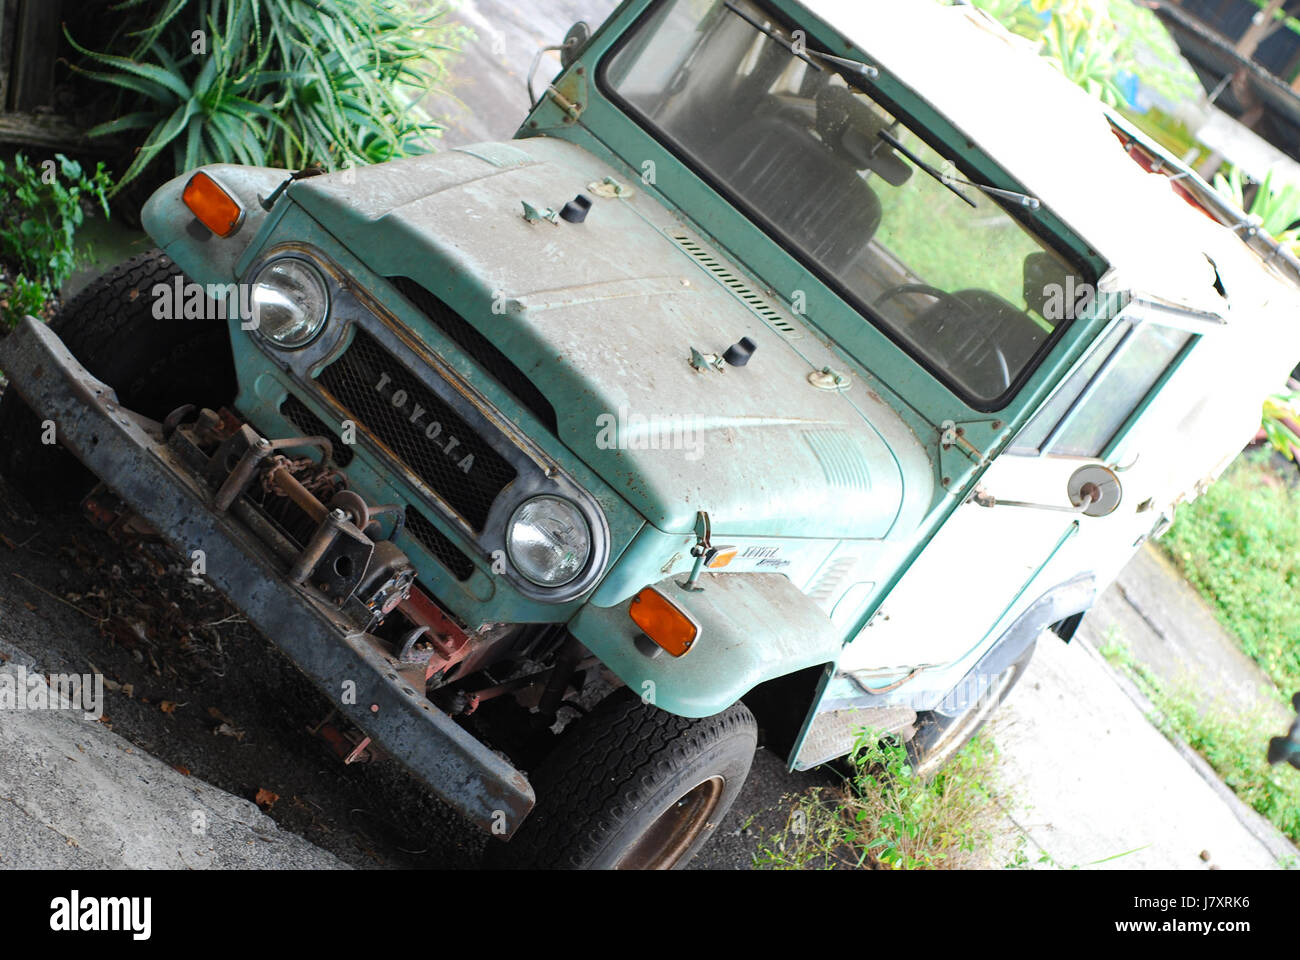 Toyota Land Cruiser Photo Stock Photos 1973 Interior Fj40 Image